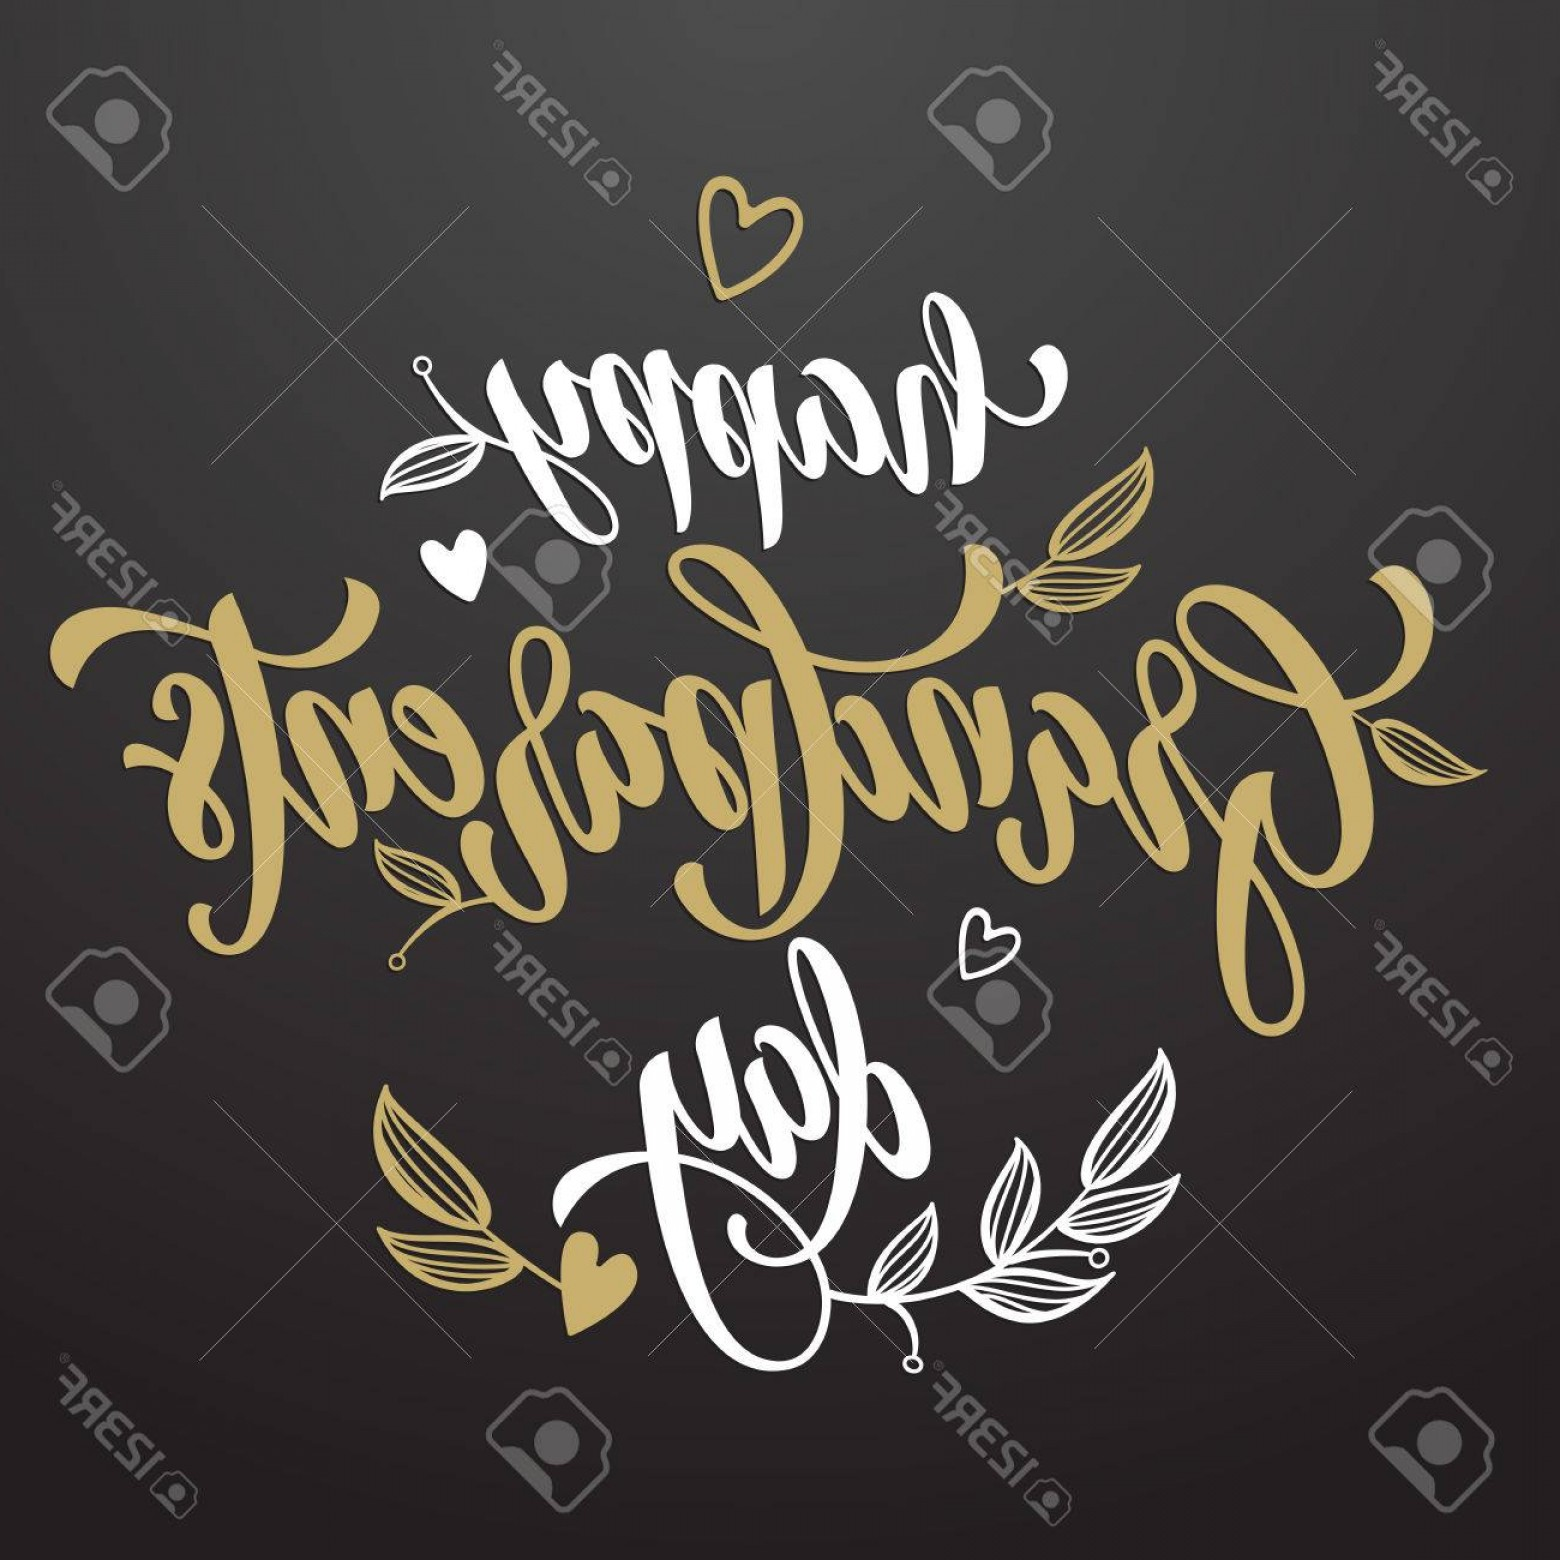 Floral Vector Calligraphy: Photostock Vector Happy Grandparents Day Artisitc Lettering For Grandfather Grandmother Greeting Card Hand Drawn Vecto